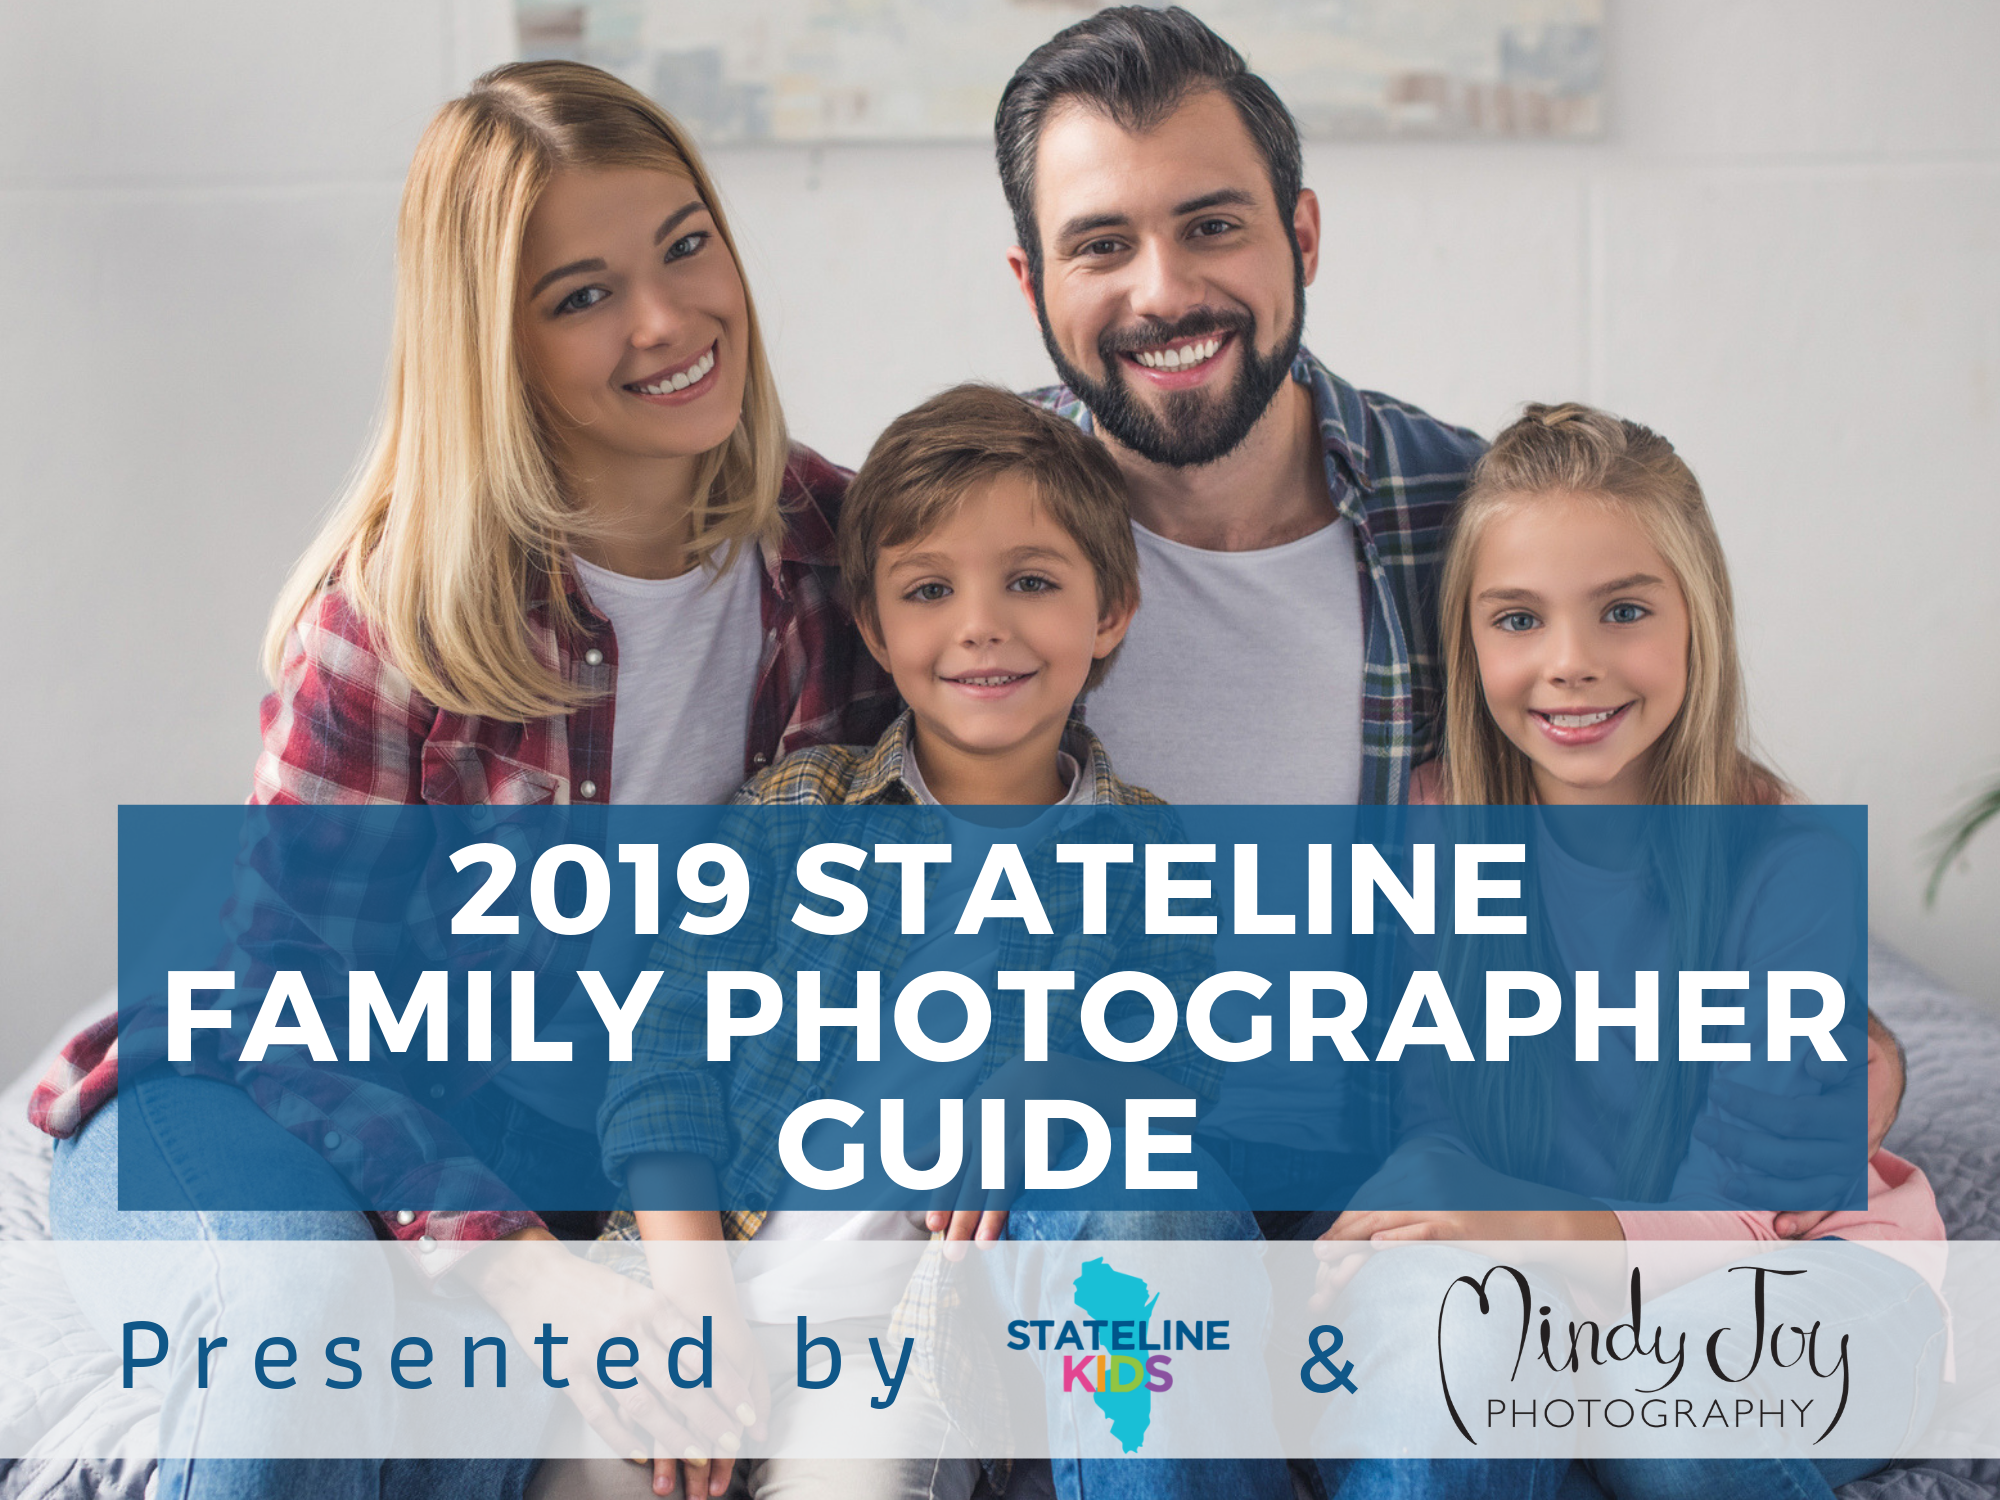 2019 Family Photographer Guide for the Rockford Area